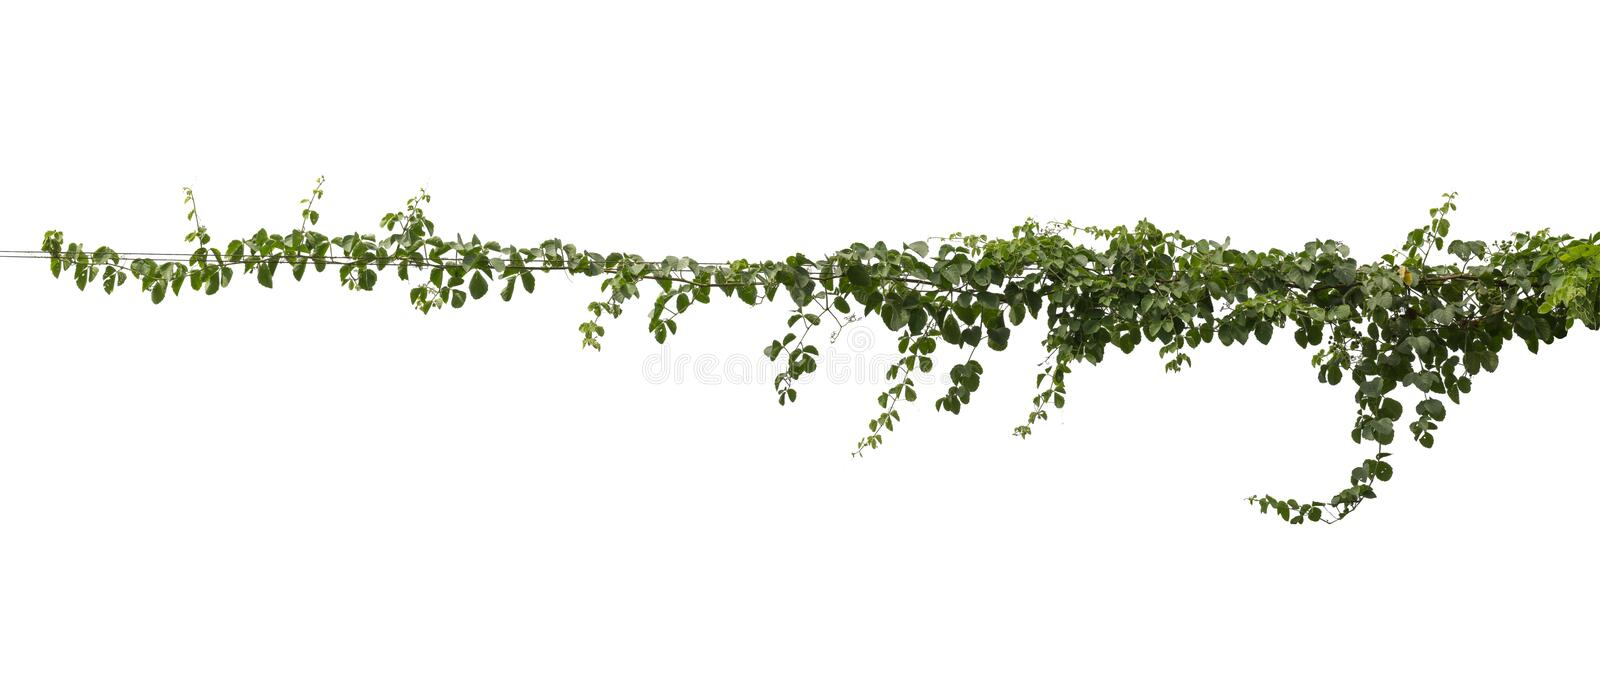 Vine plant jungle, climbing isolated on white background. Clipping path stock image